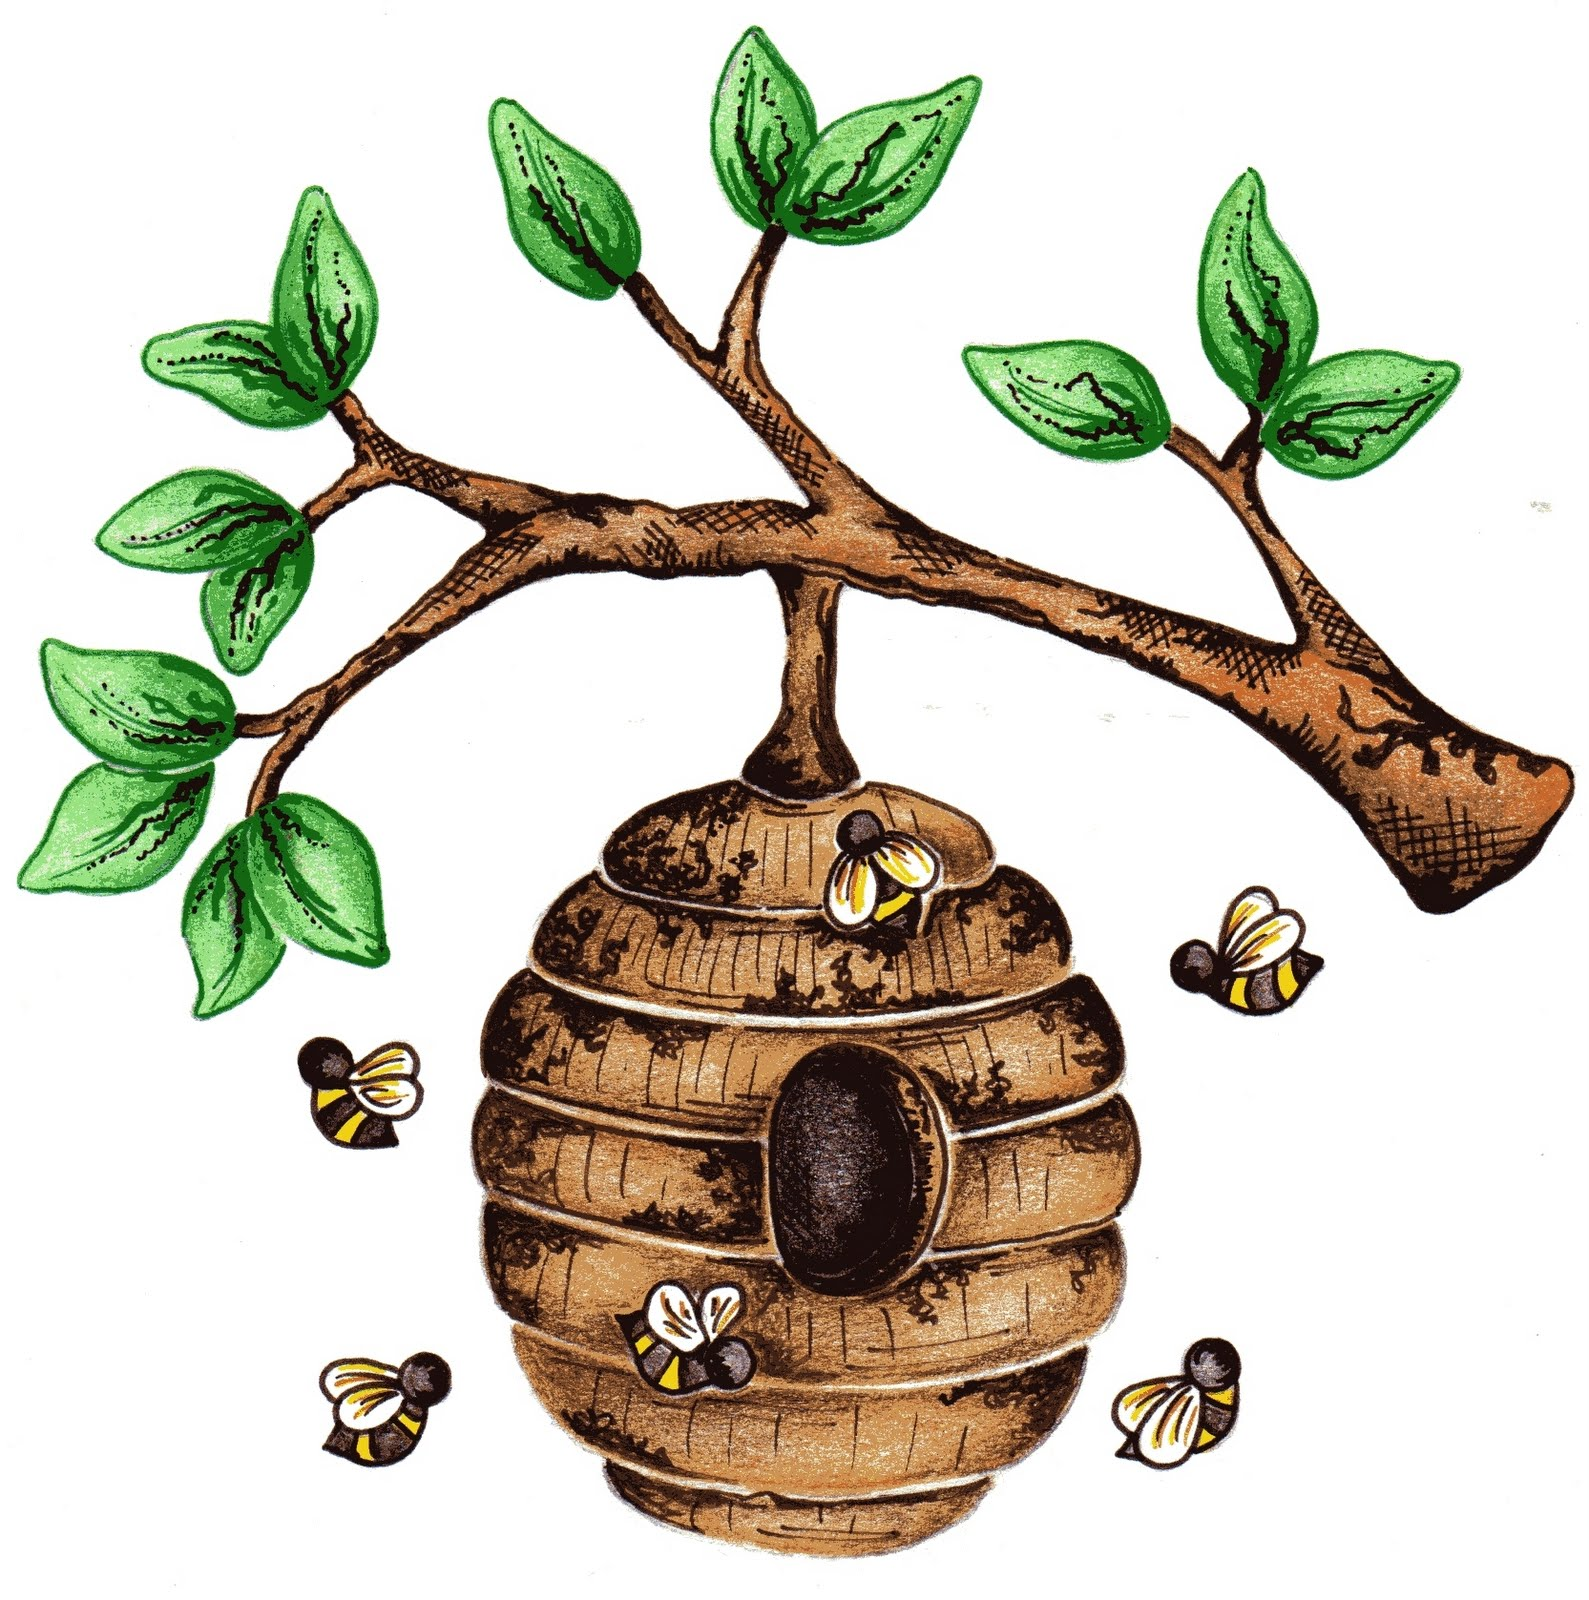 1589x1600 Beehive Images For Bee Hive In Tree Clip Art